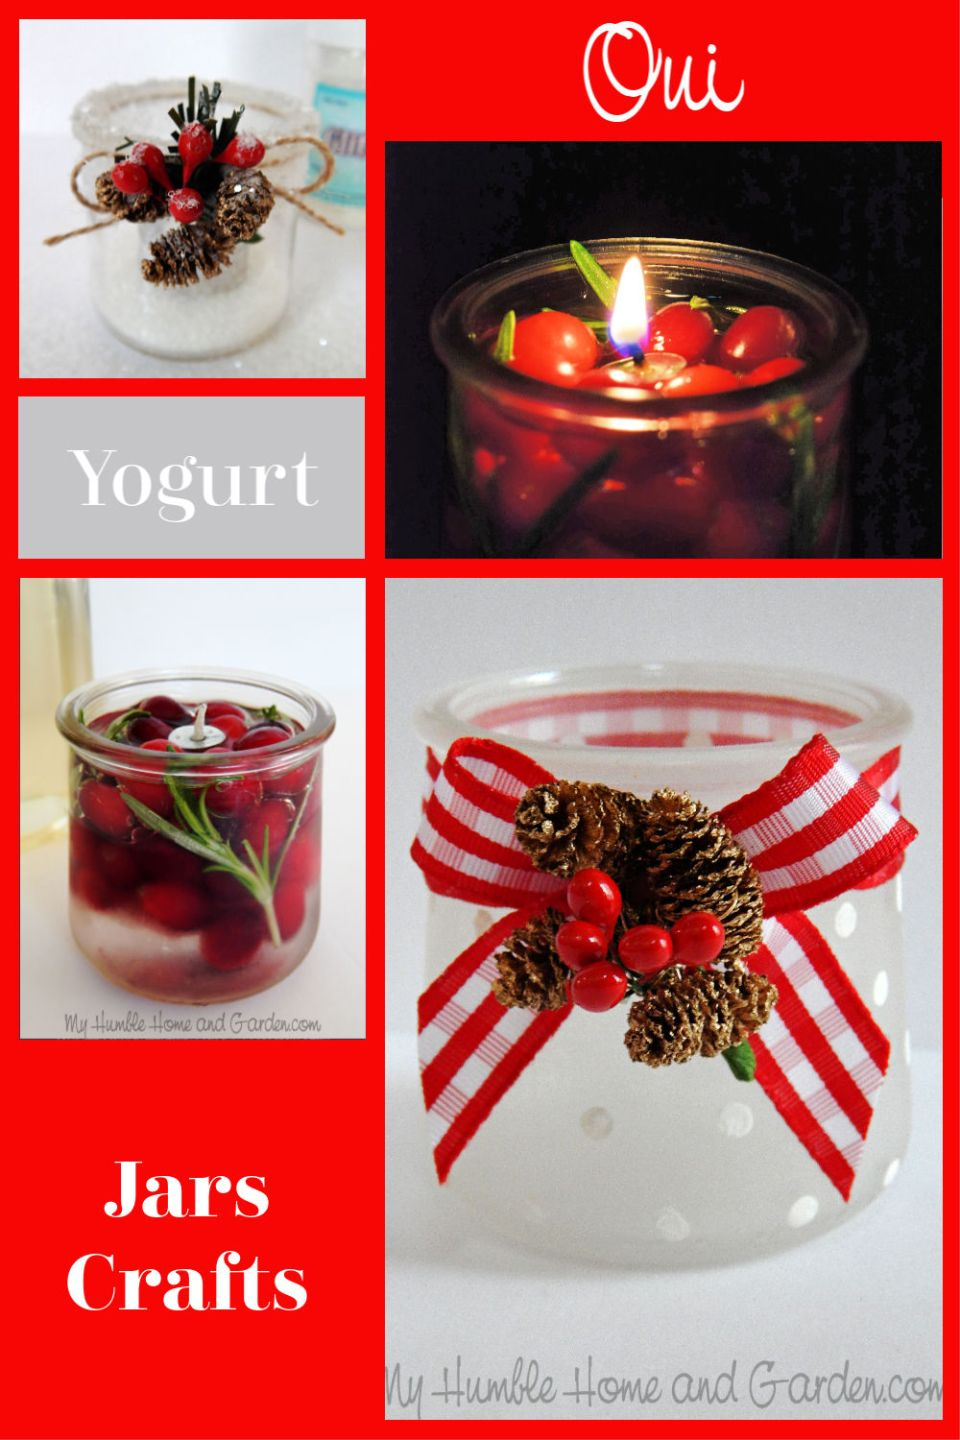 Oui Yogurt Jars You Ll Love These Amazing Crafts My Humble Home And Garden